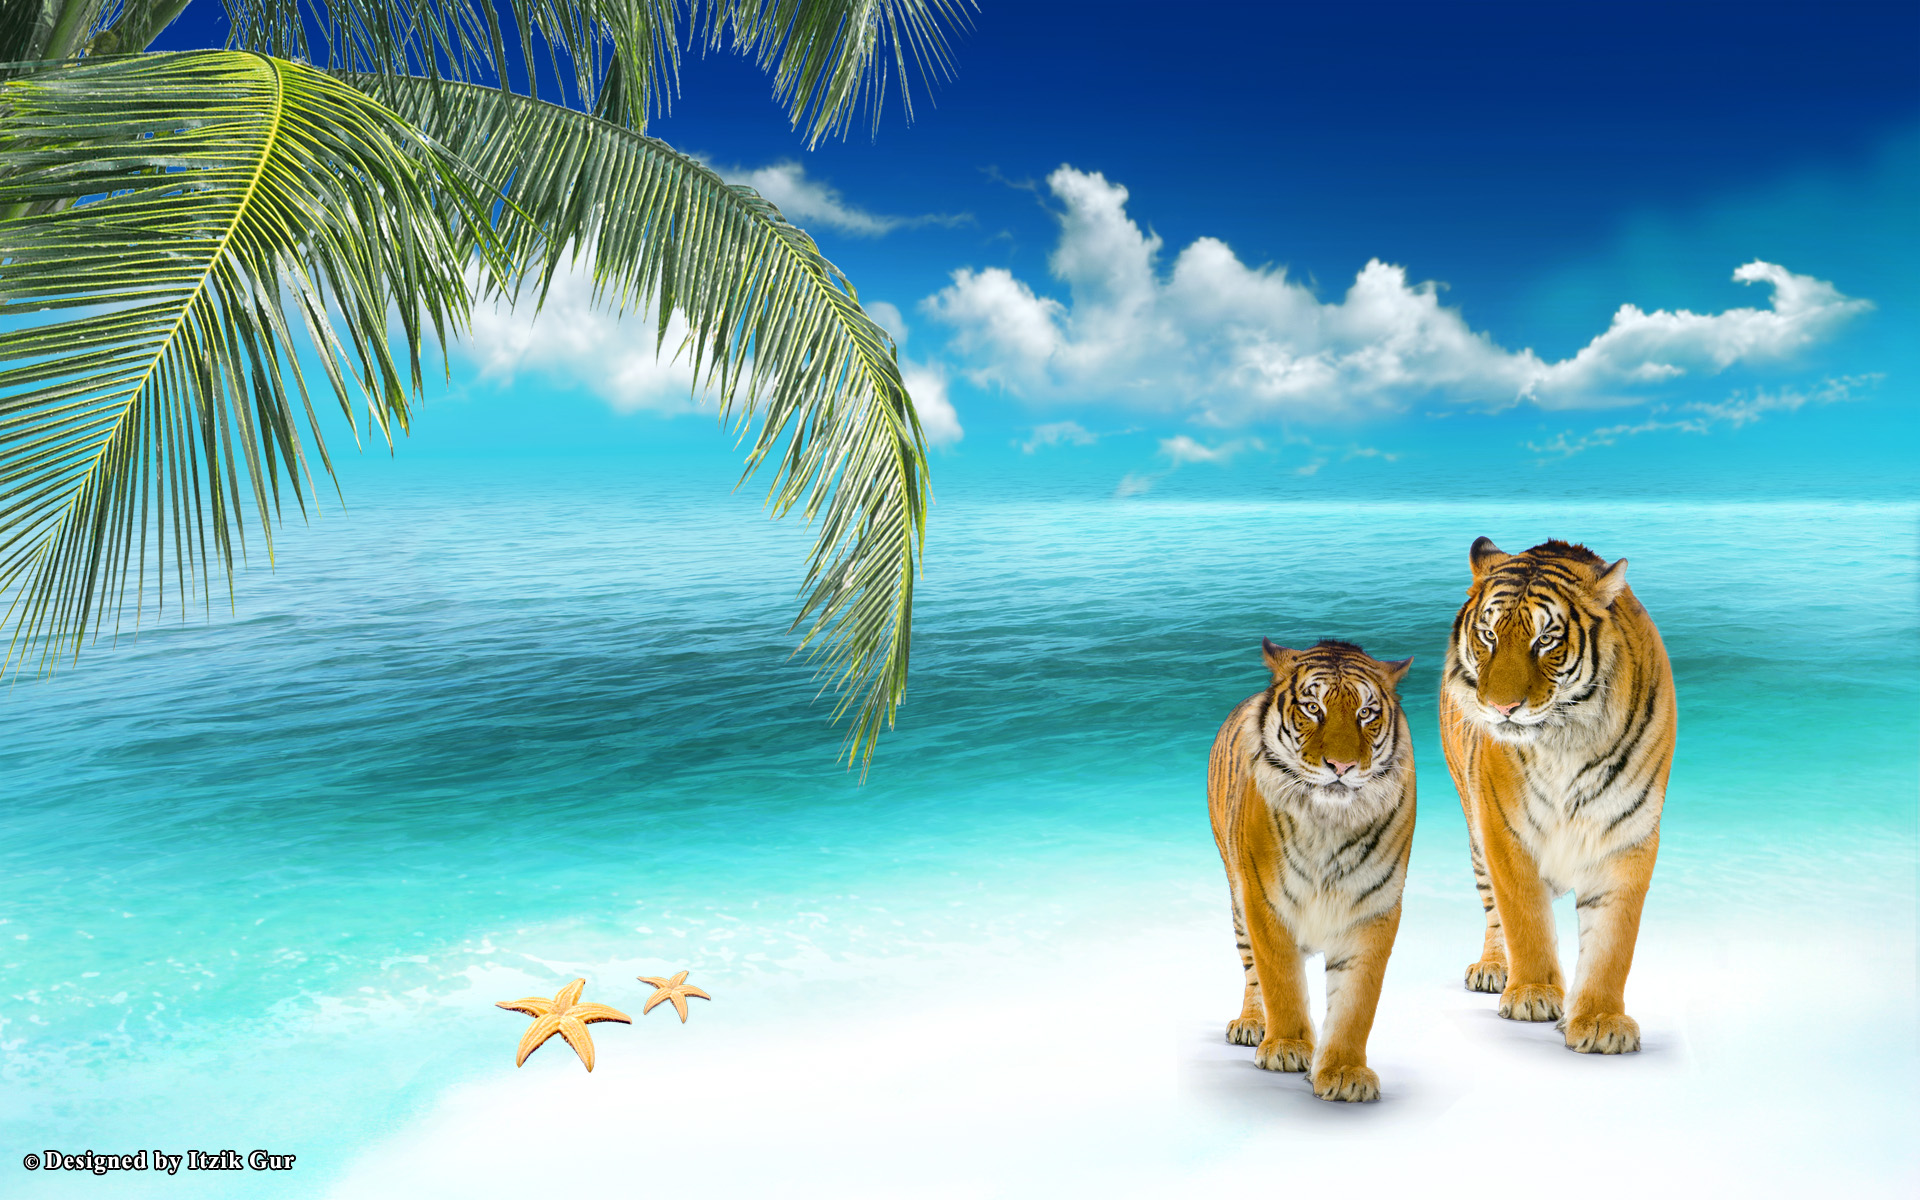 animals-at-the-beach-Google-Search-wallpaper-wpc5802128